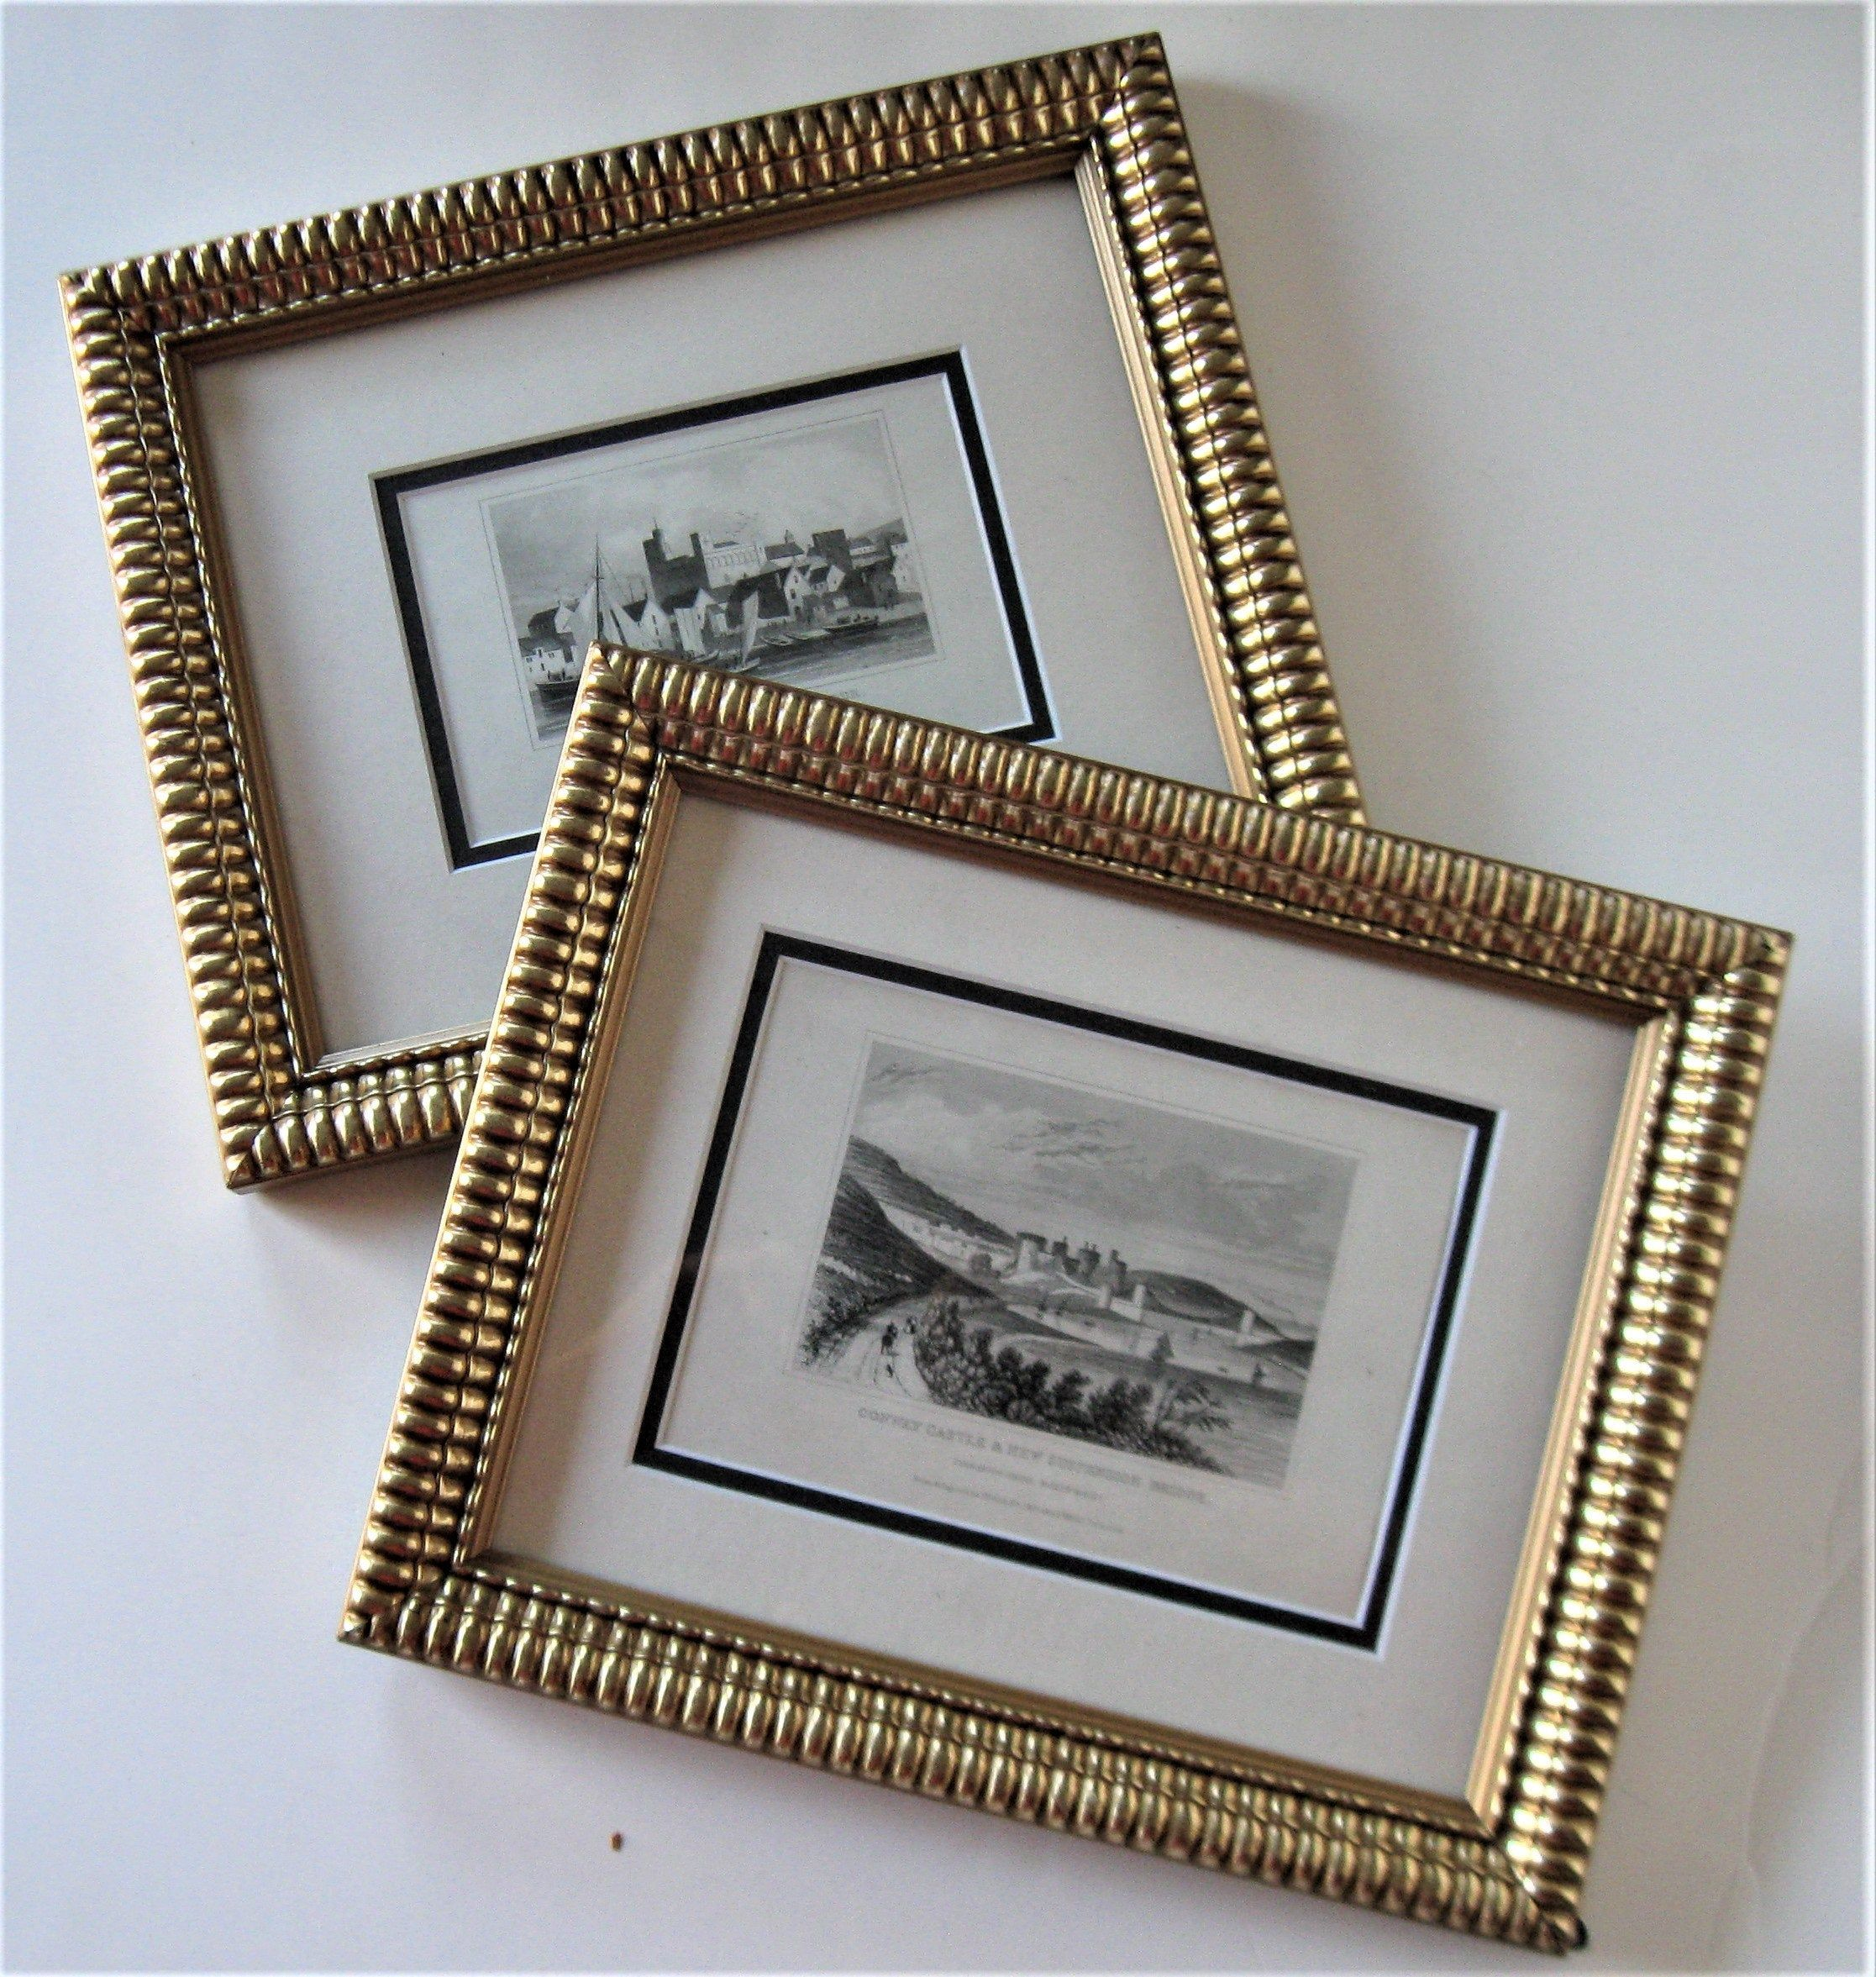 2 Vintage Gold Framed Wales England Prints 10 X Etsy In 2020 Cottage Wall Decor Vintage Framed Prints Gold Frame